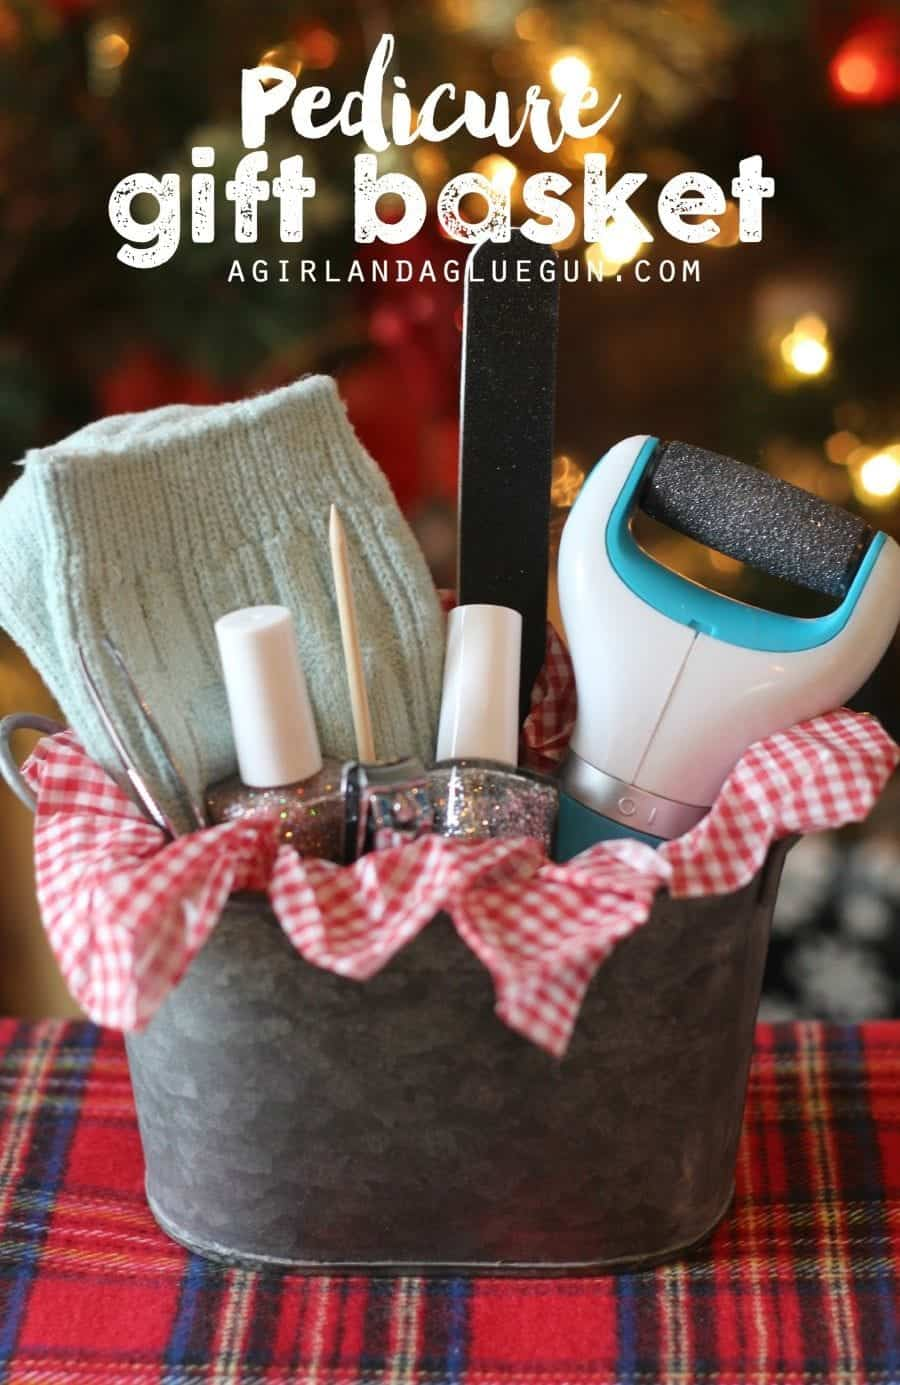 pedicure-gift-basket-ideas-900x1385